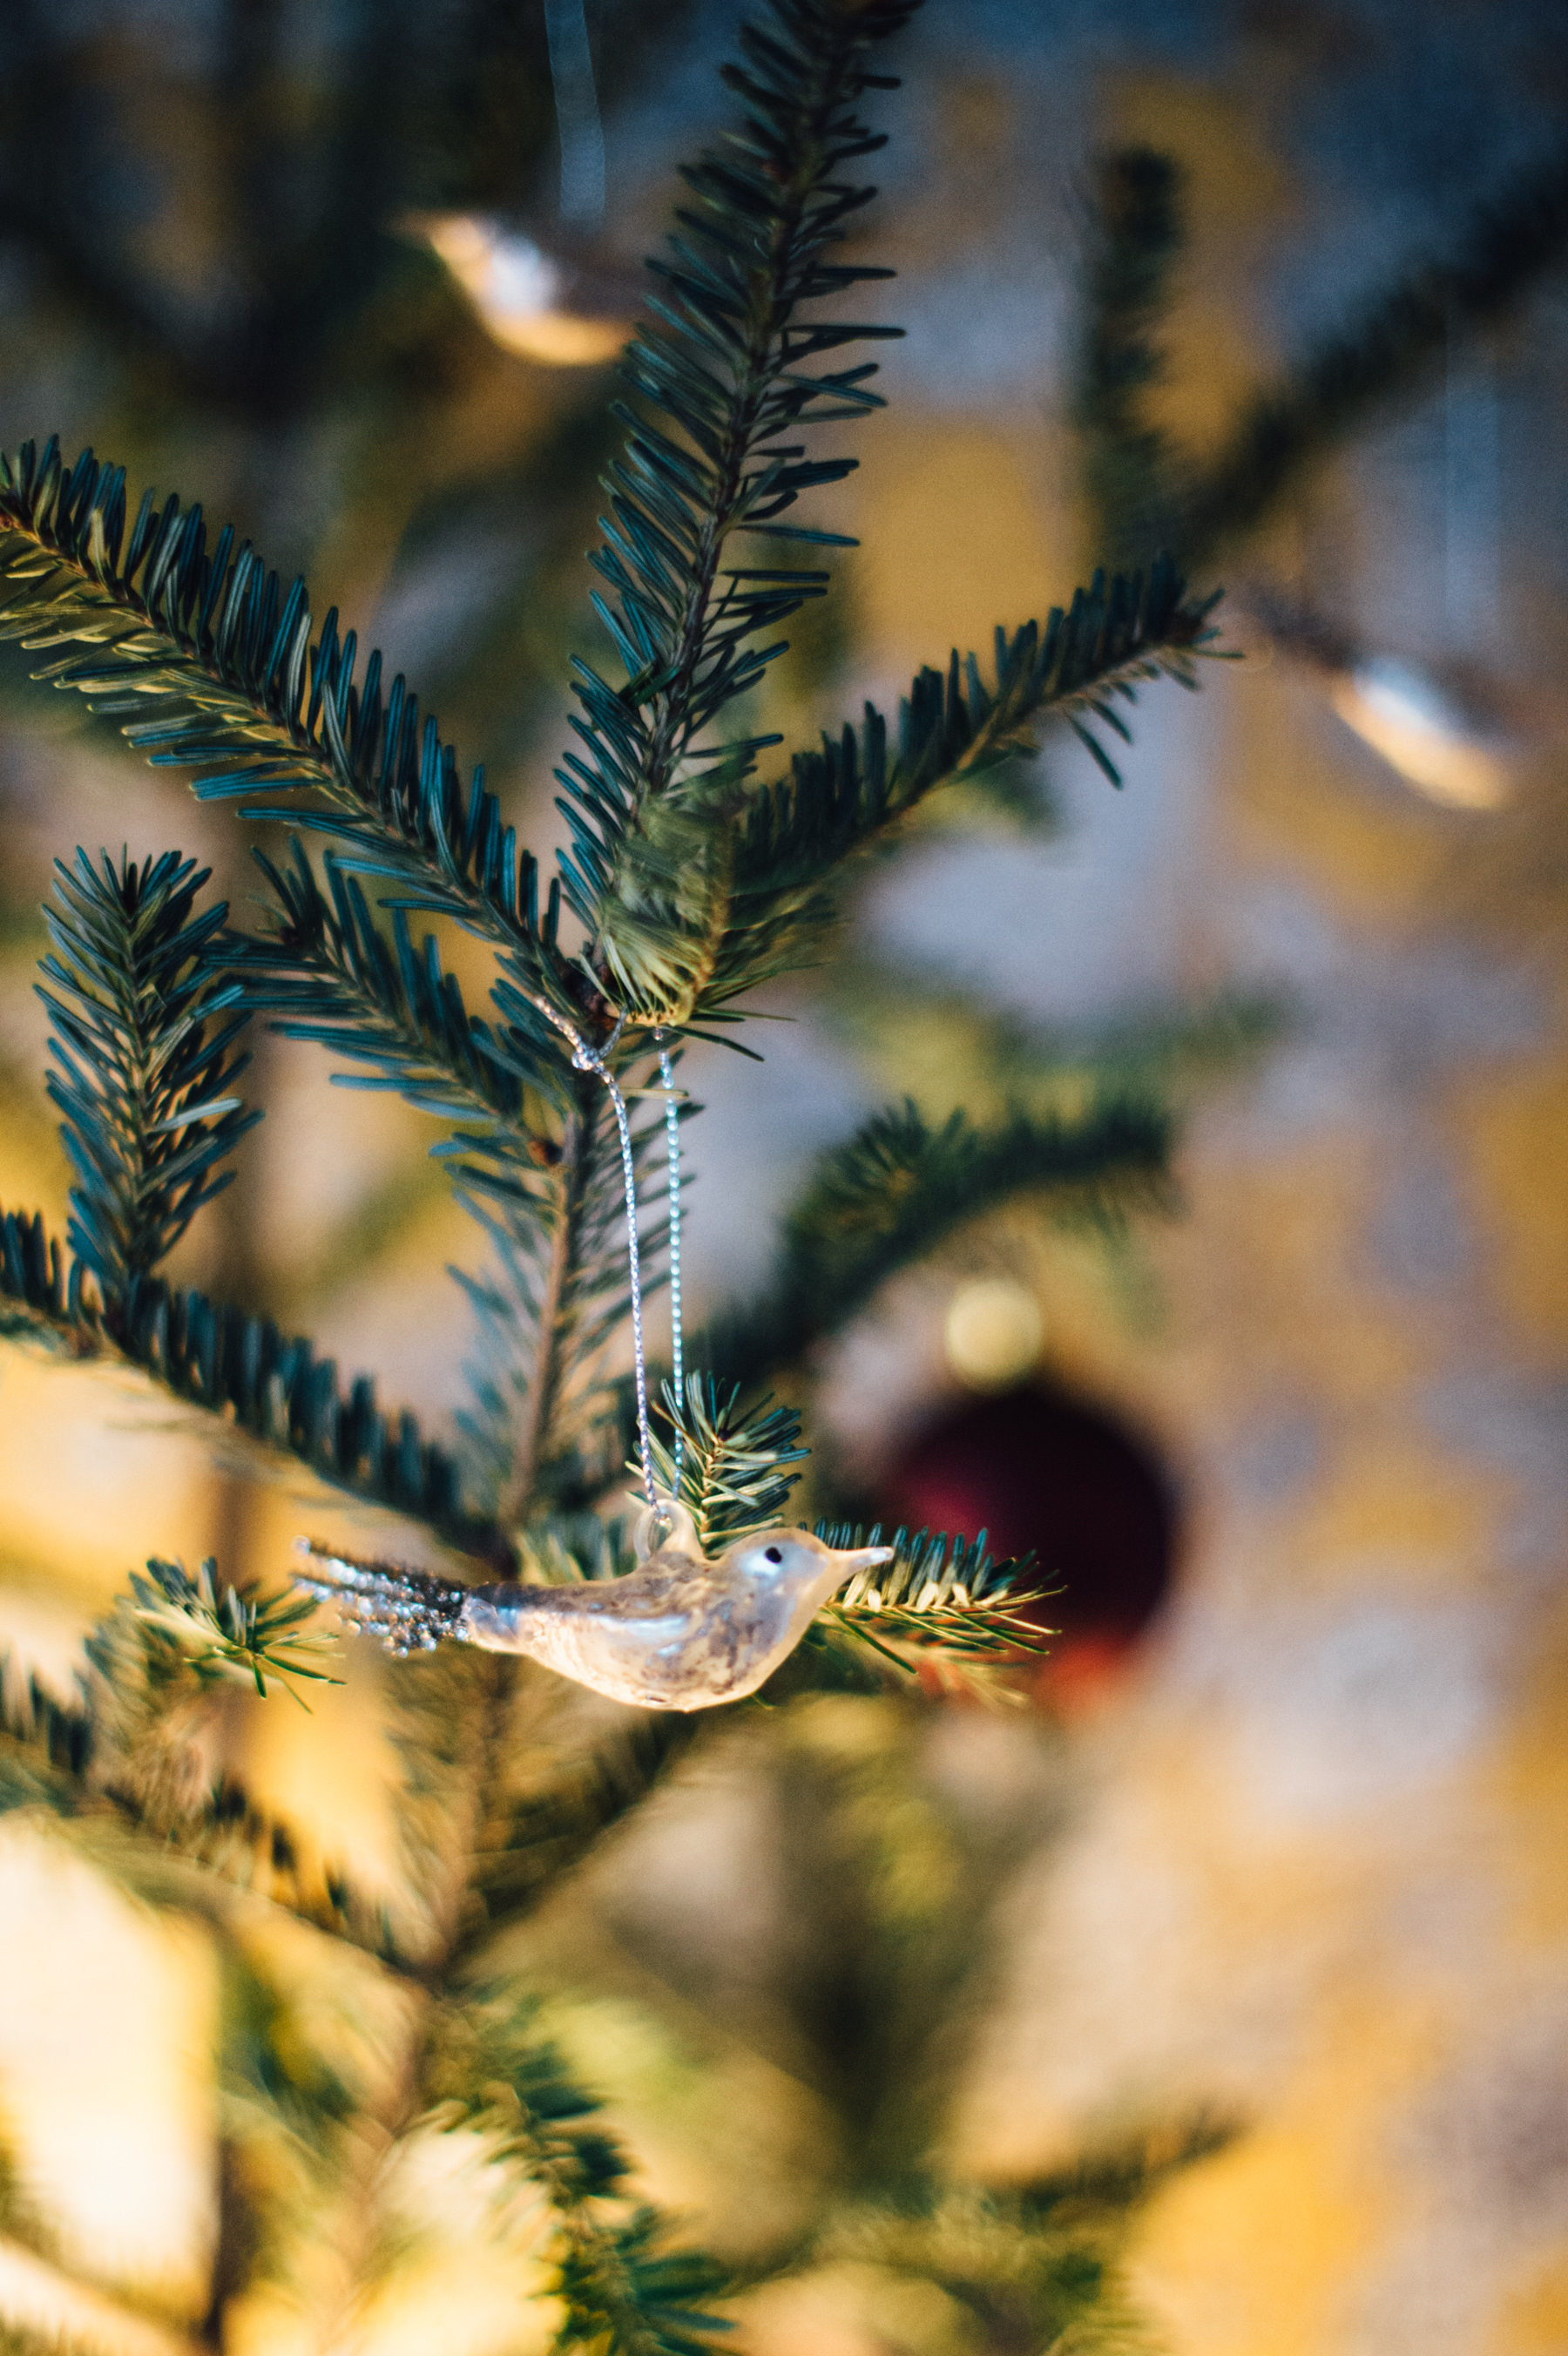 The mini Glass bird ornaments from Neatly Nested Design & Decor add a little sparkle to your Charlie Brown Christmas tree. And in our case, went nicely with Li's wallpaper.